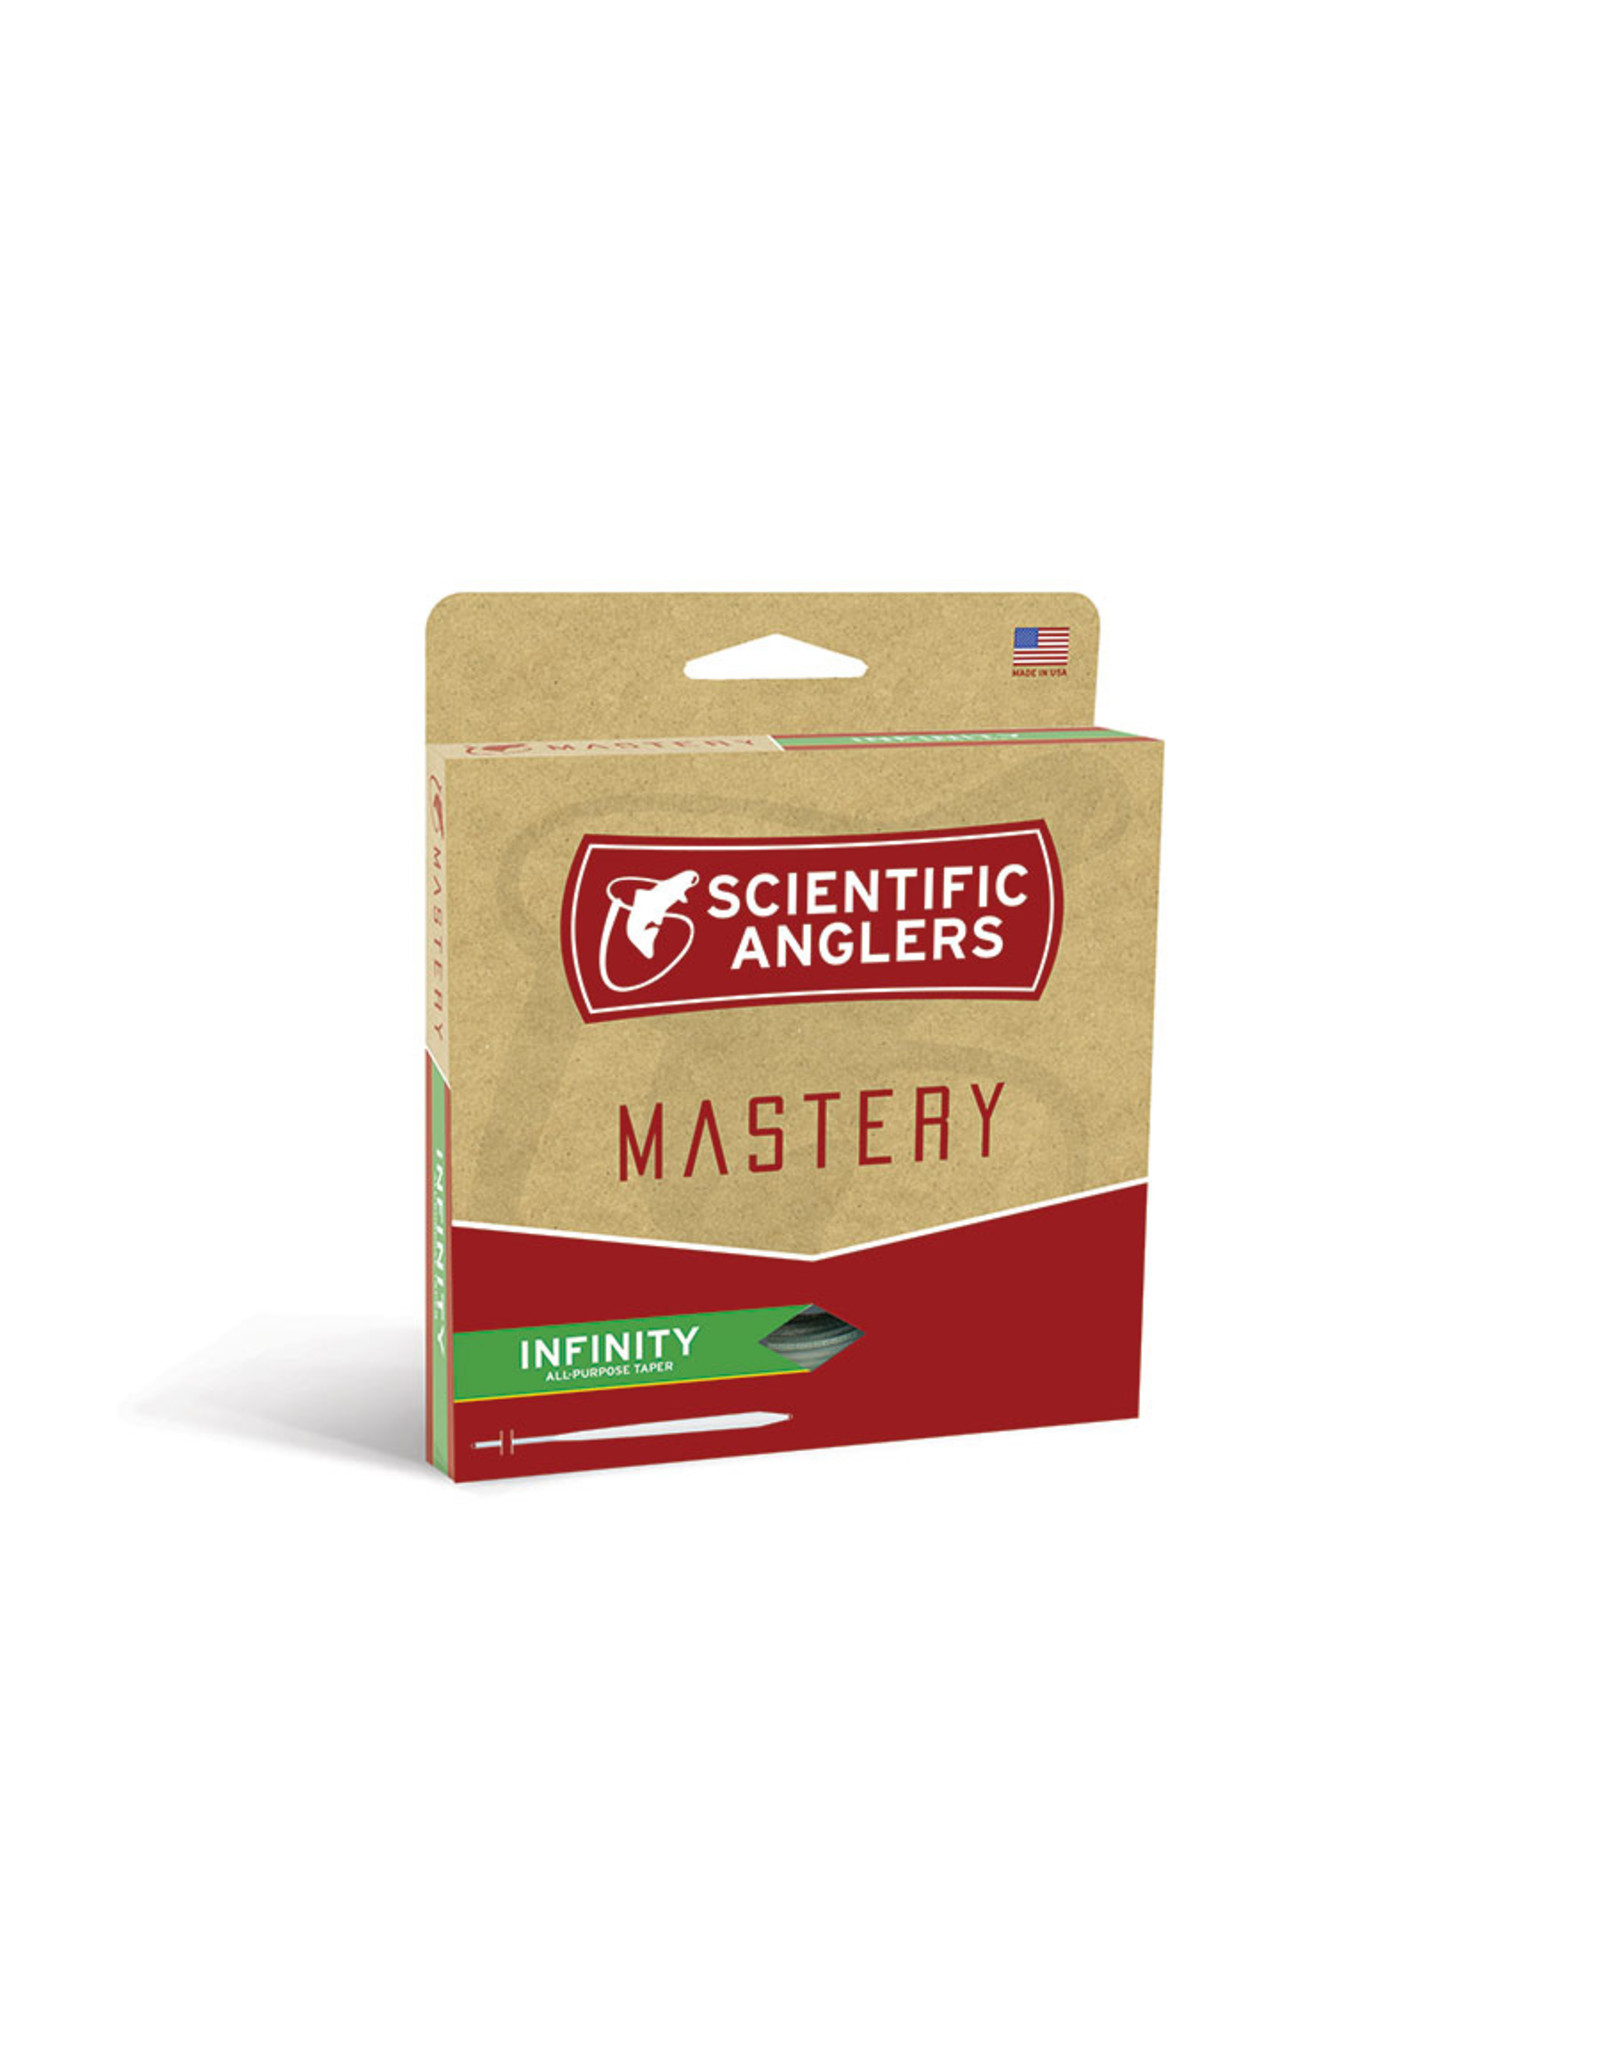 SCIENTIFIC ANGLERS Mastery Infinity